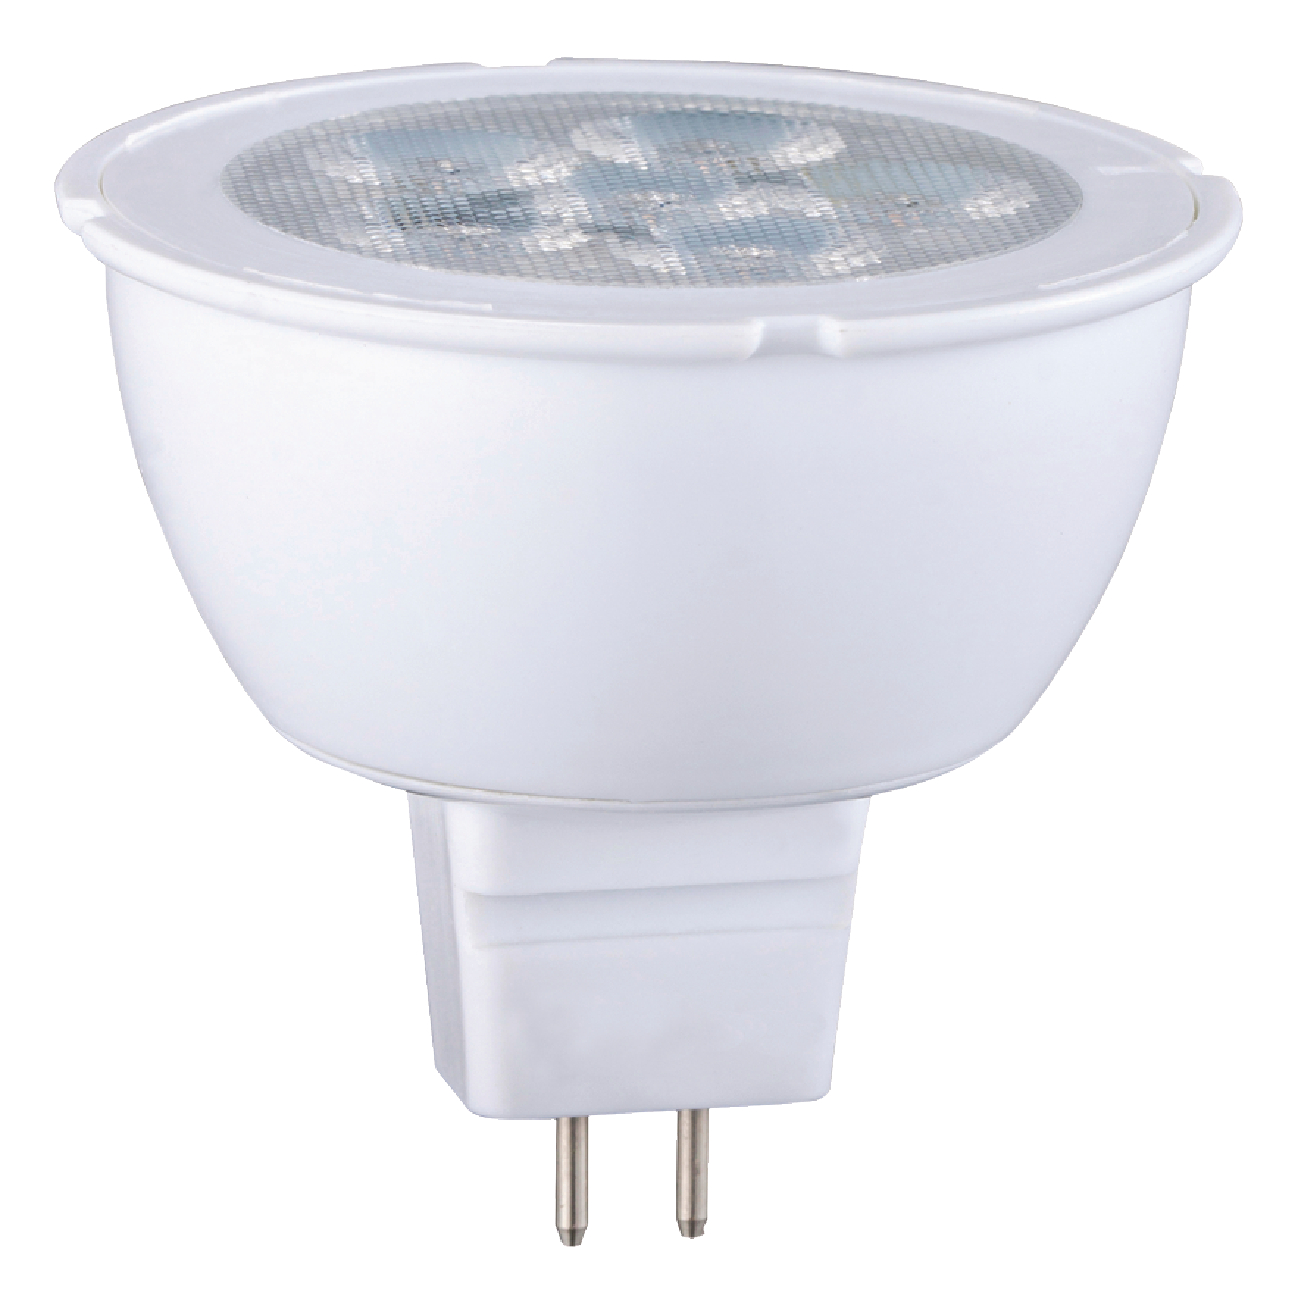 HQ LED žárovka MR16 GU5.3 5.5W 350lm 2700K (HQLGU53MR16002)